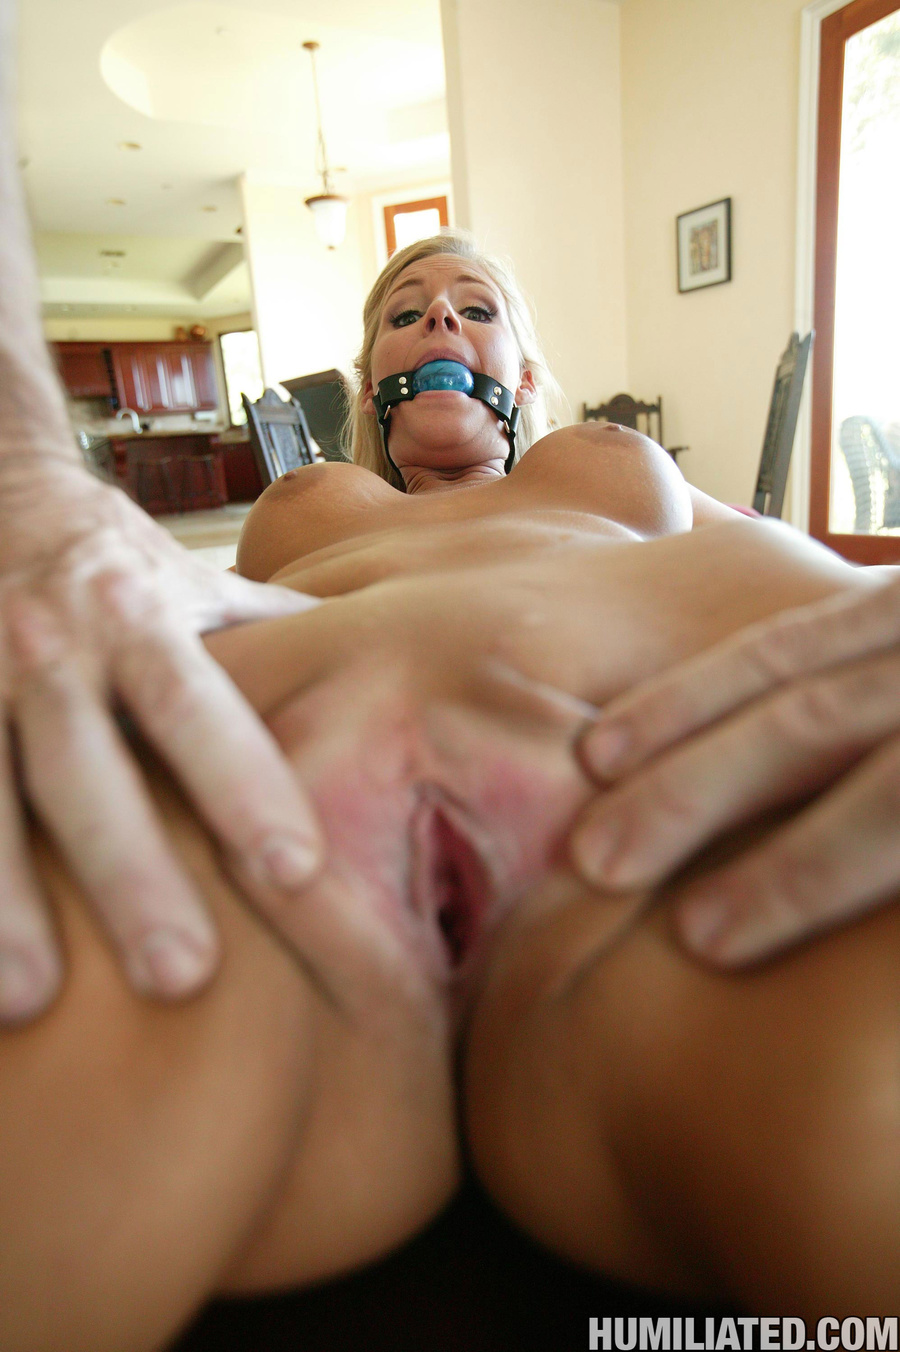 Extreme Bdsm Hot Mom With Blonde Pussy Get - Xxx Dessert -6231